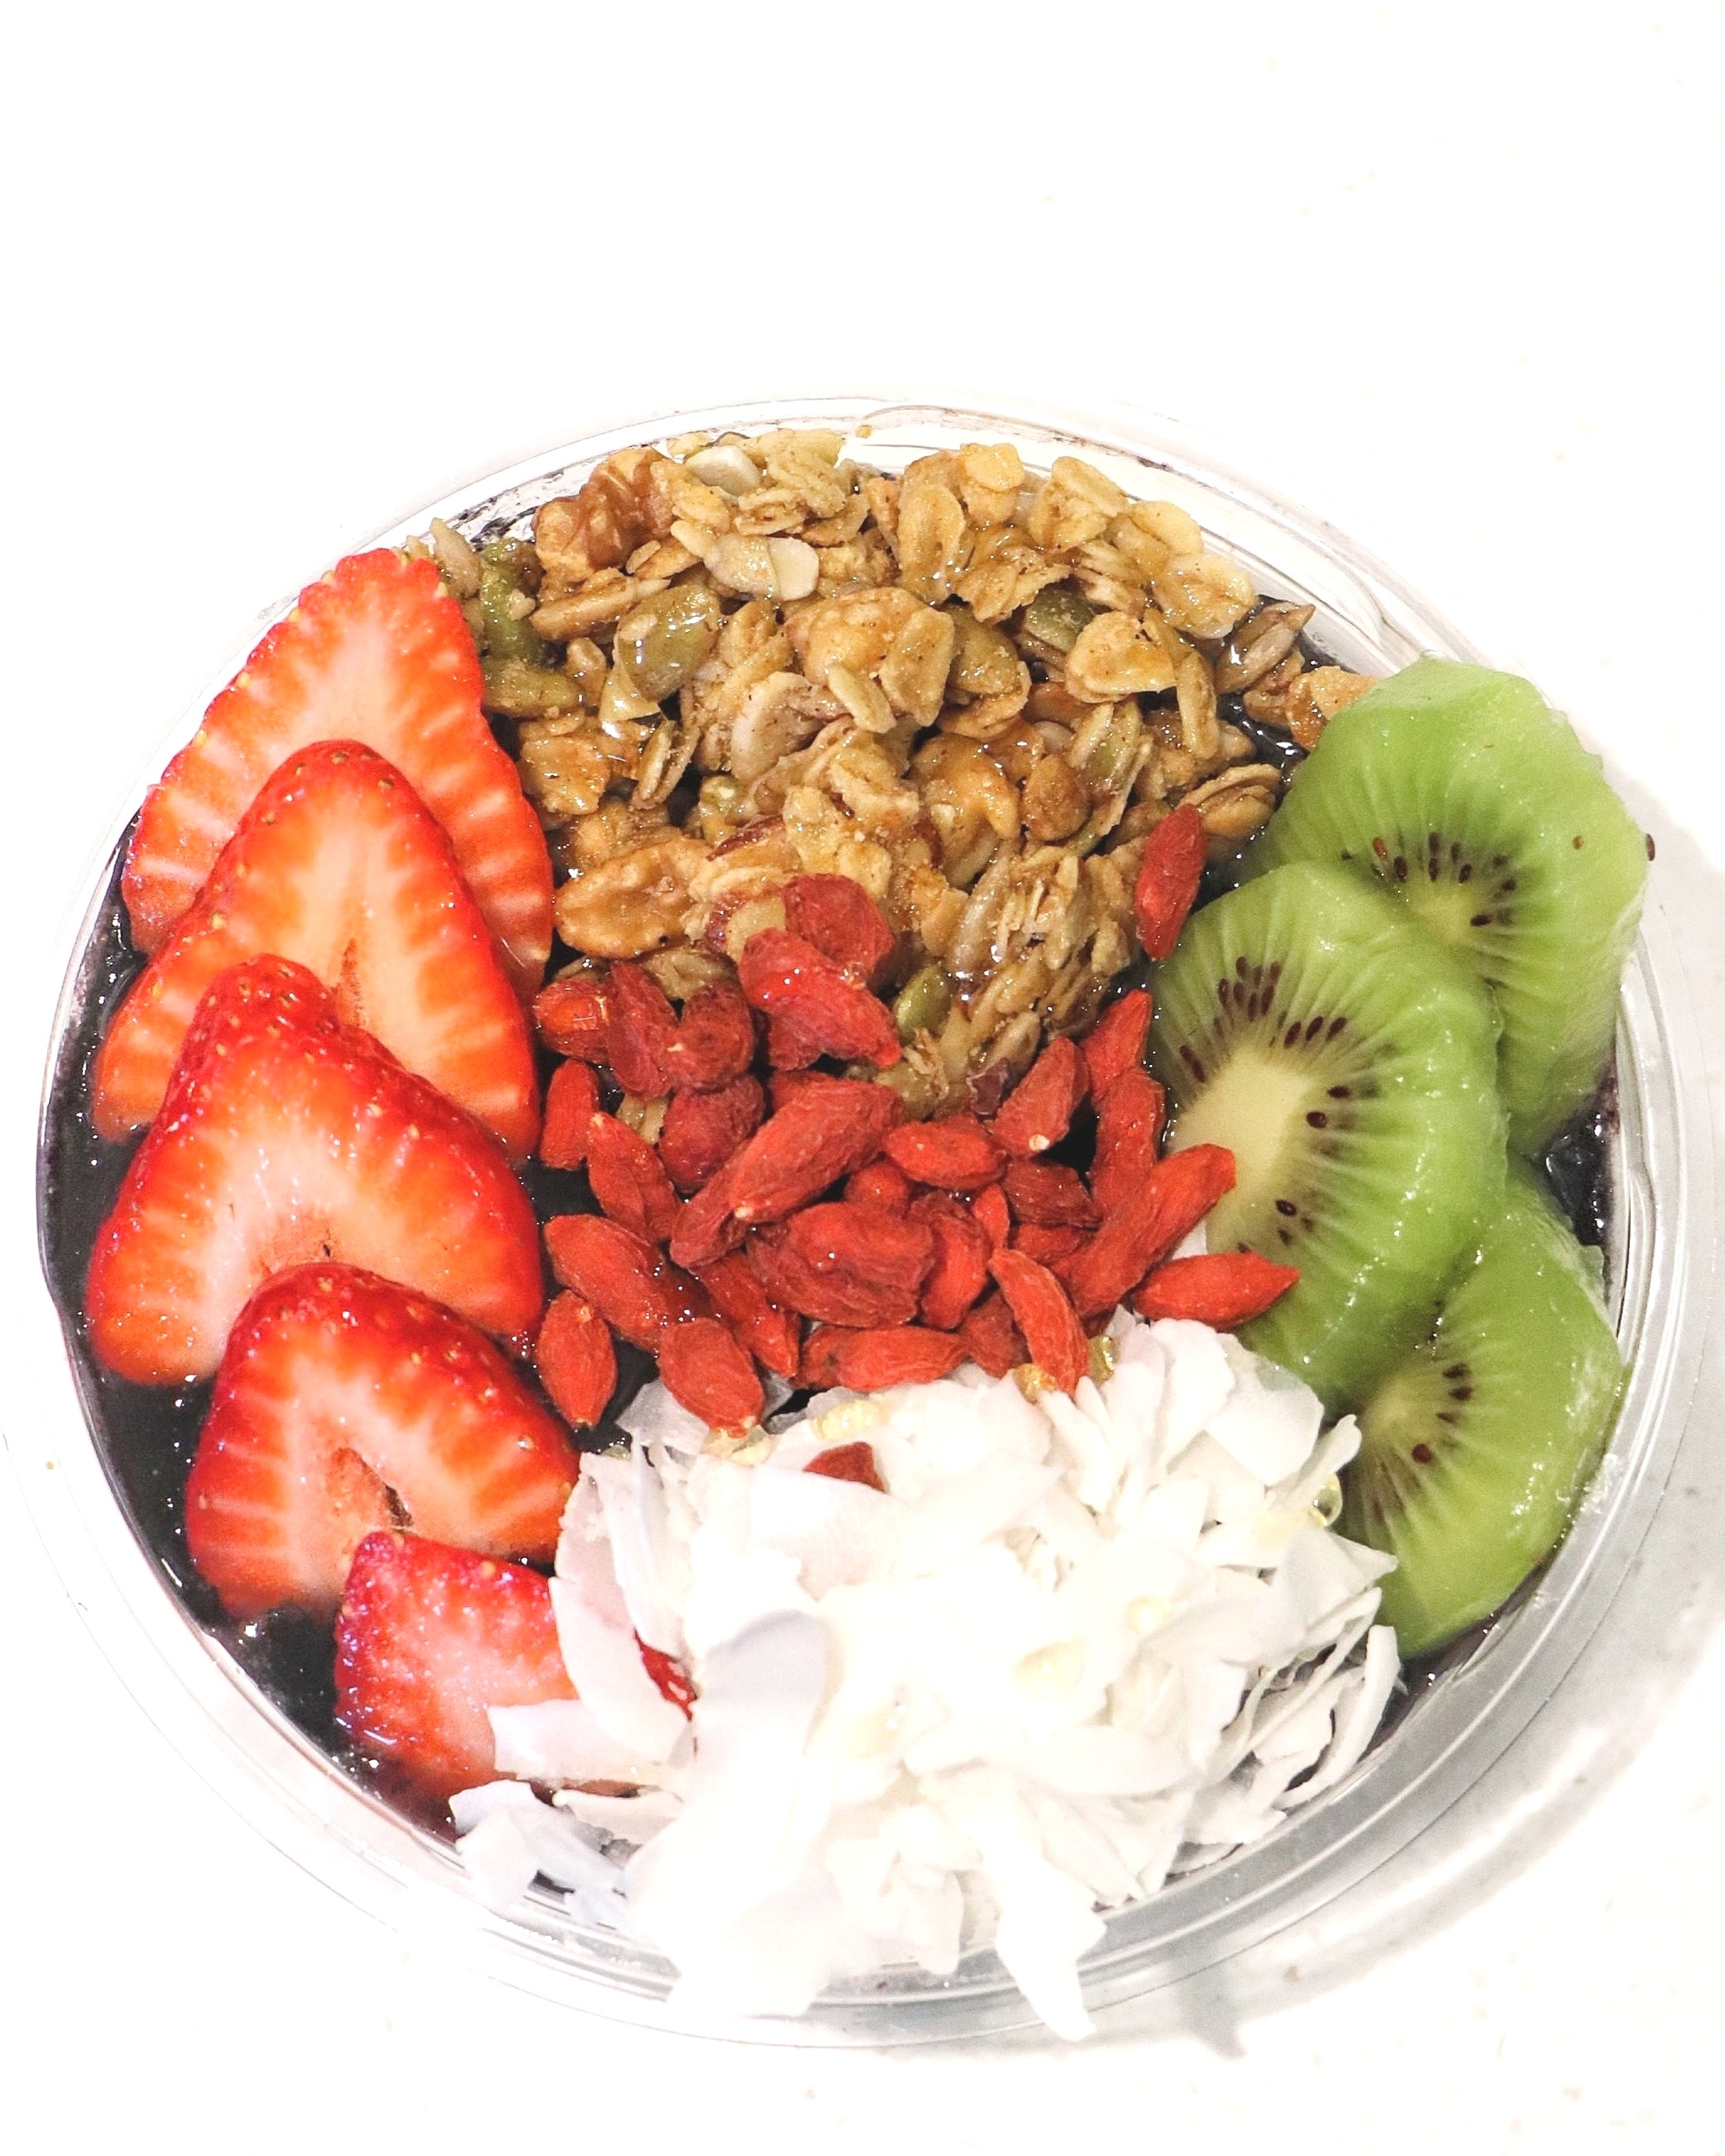 Black Majik:  Activated Charcoal / Blueberry / Strawberry / Banana / Coconut Water  Topped with Granola, Kiwi, Strawberries, Coconut, Goji Berries